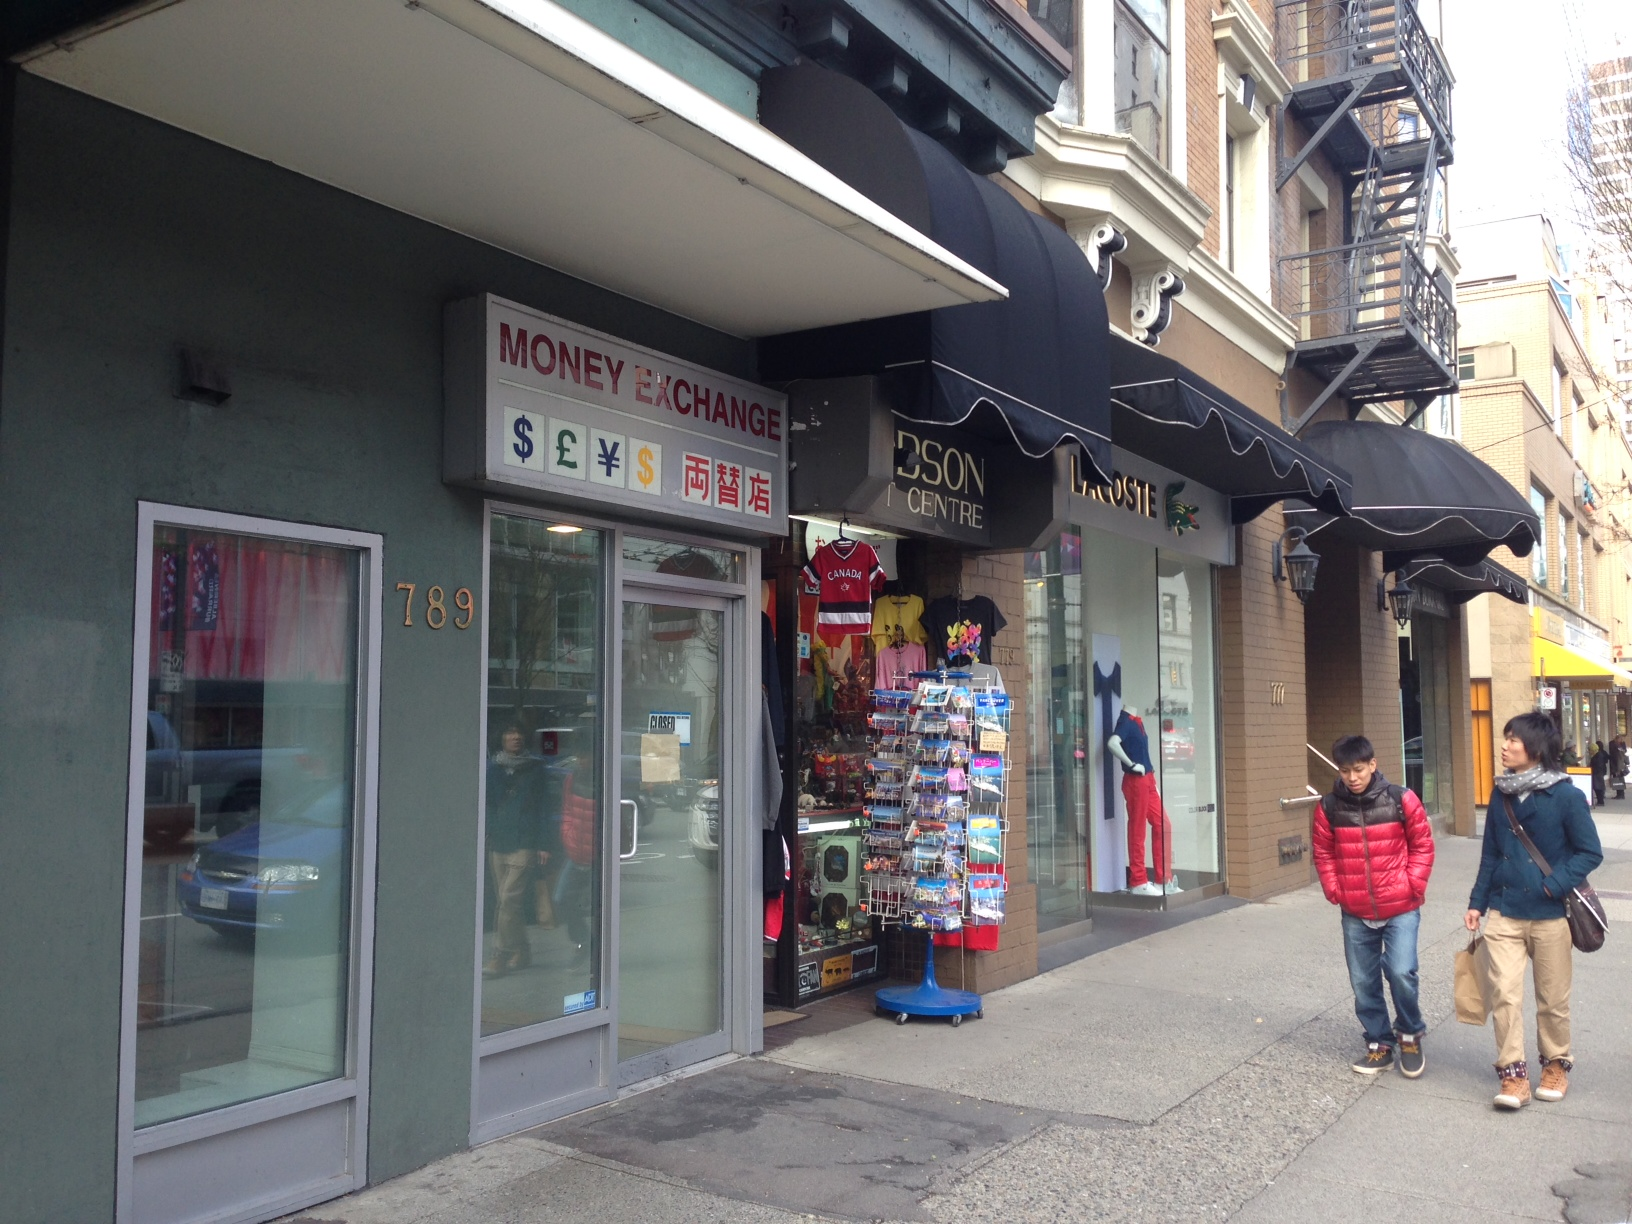 Roots will expand into a space formerly occupied by a currency exchange retailer at 789 Burrard Street